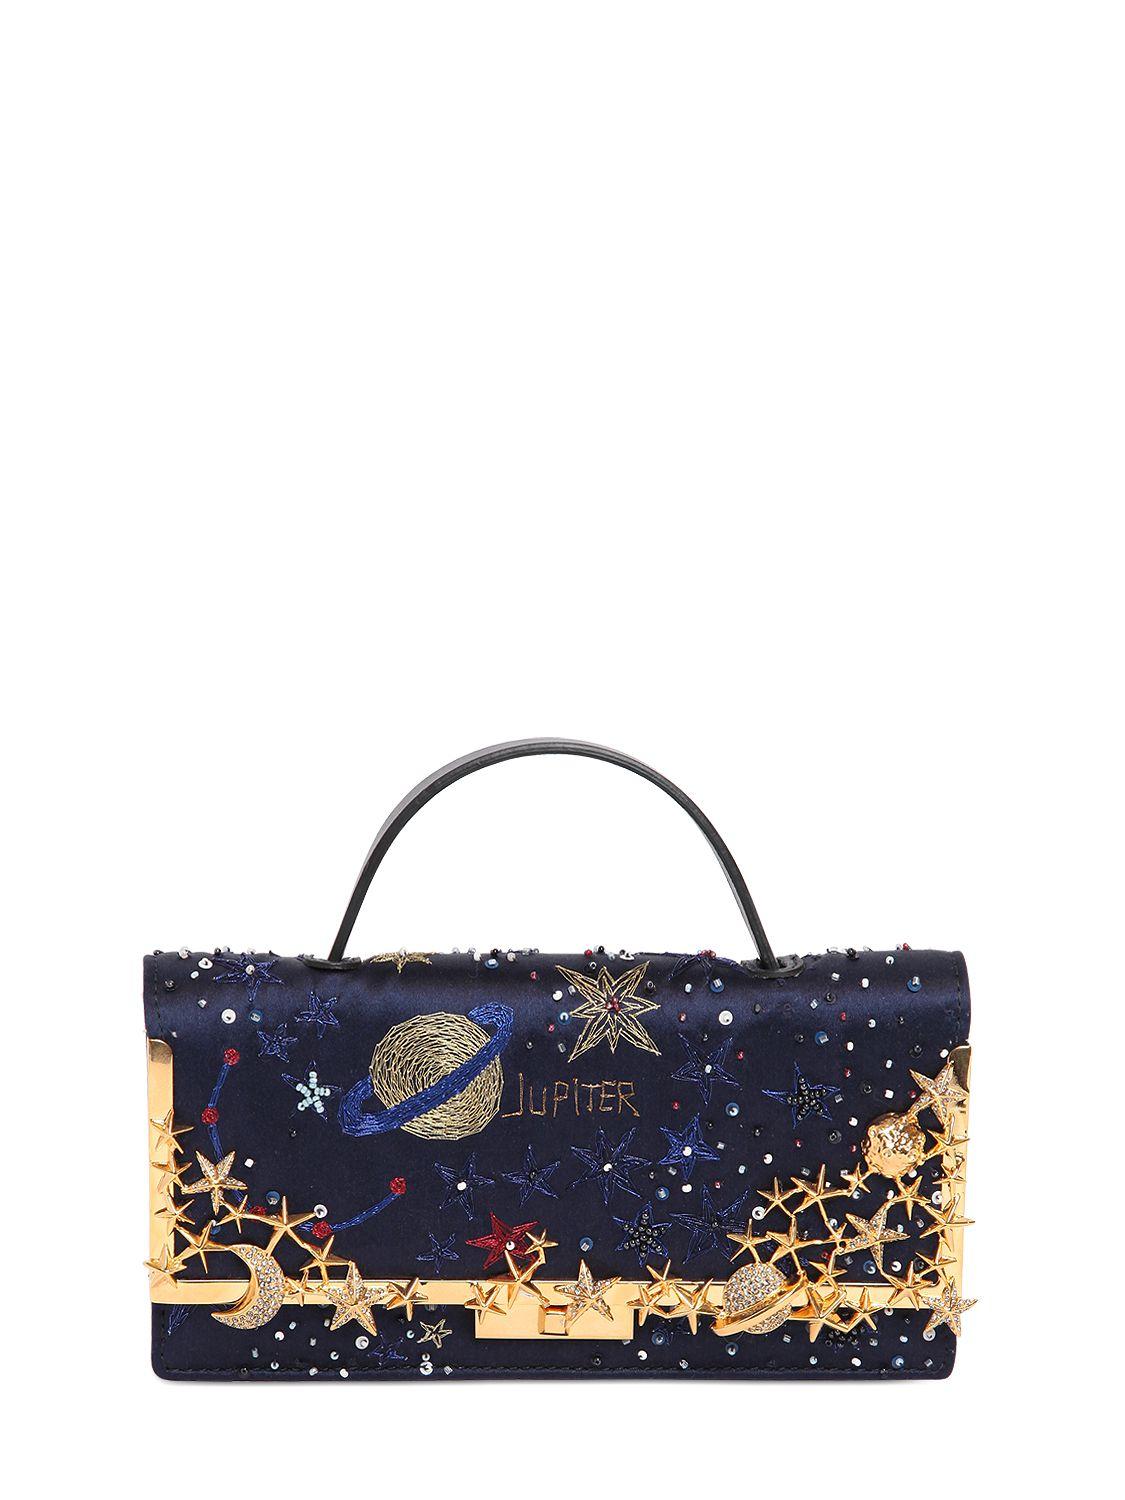 e4b4b0bb08 Valentino Cosmos Embroidered Satin Clutch in Blue - Lyst